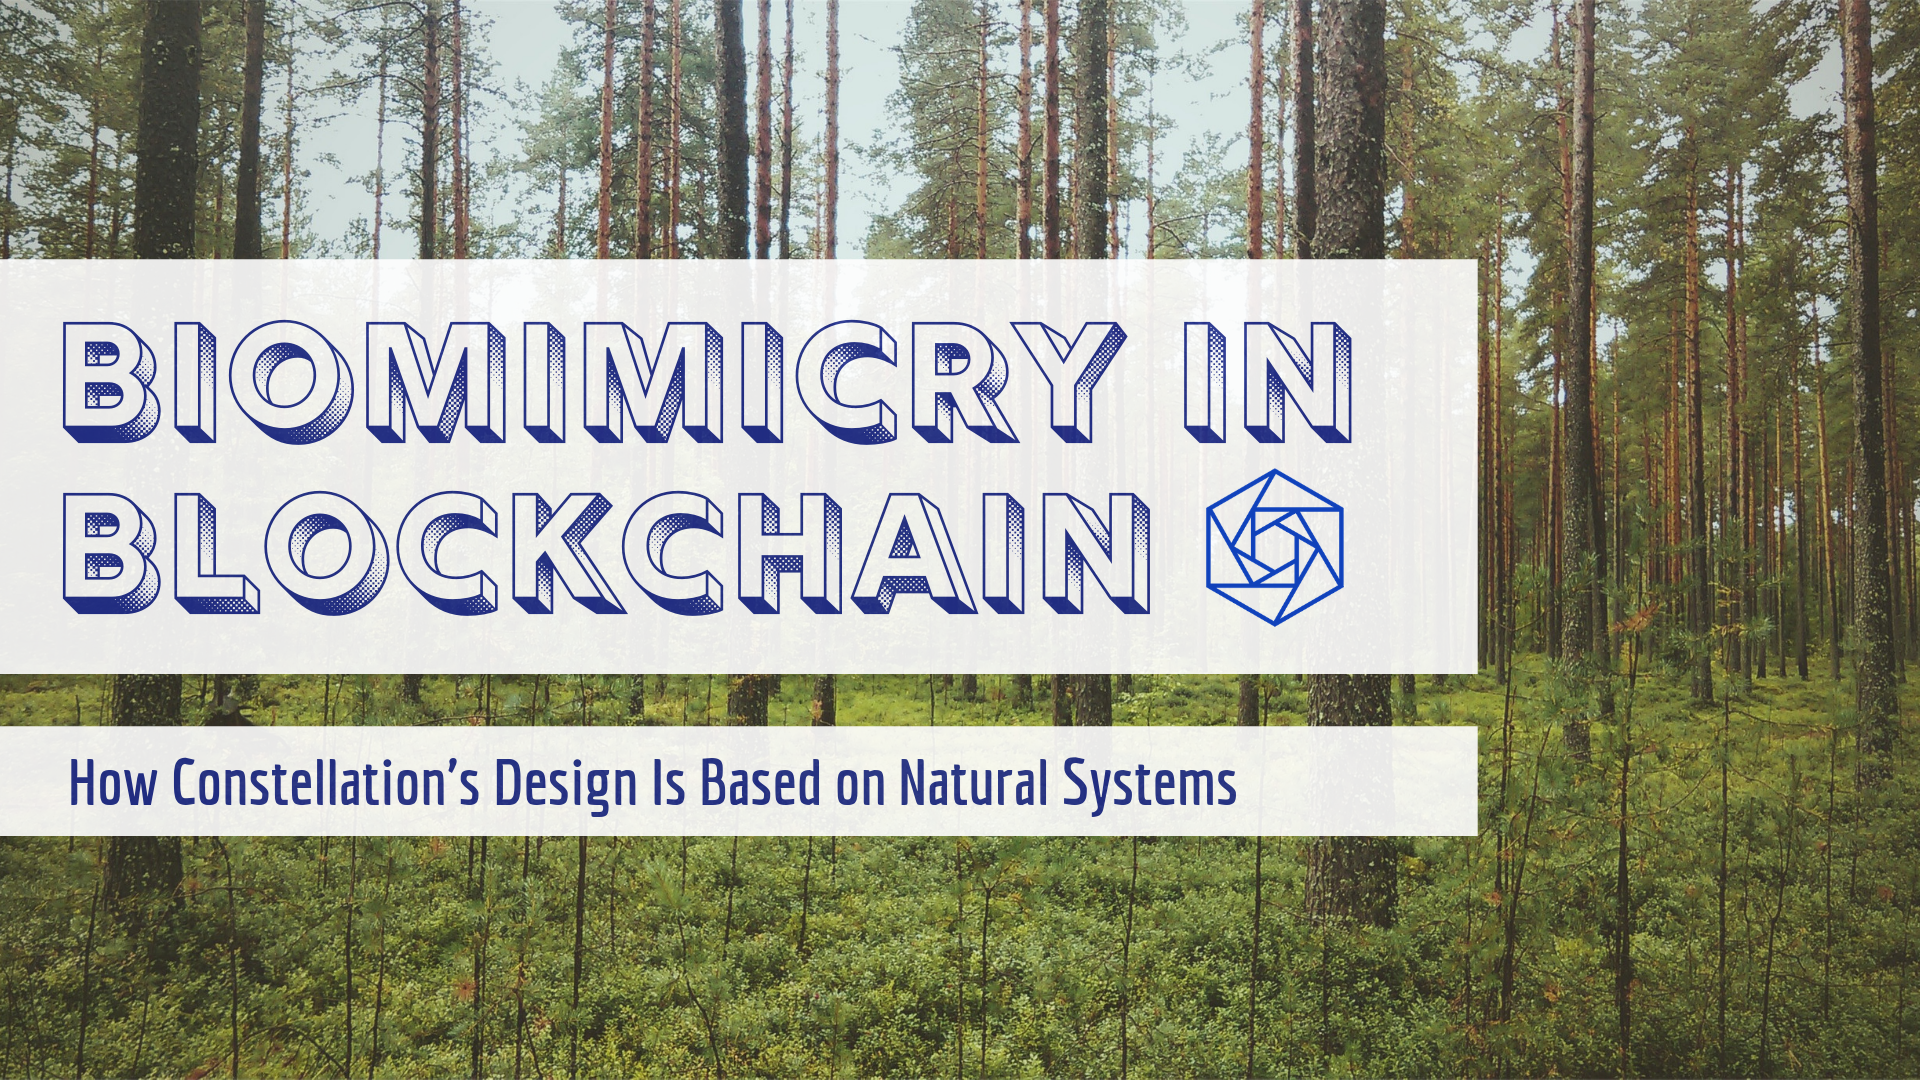 Biomimicry in Blockchain: How Constellation's Design Is Based On Natural Systems